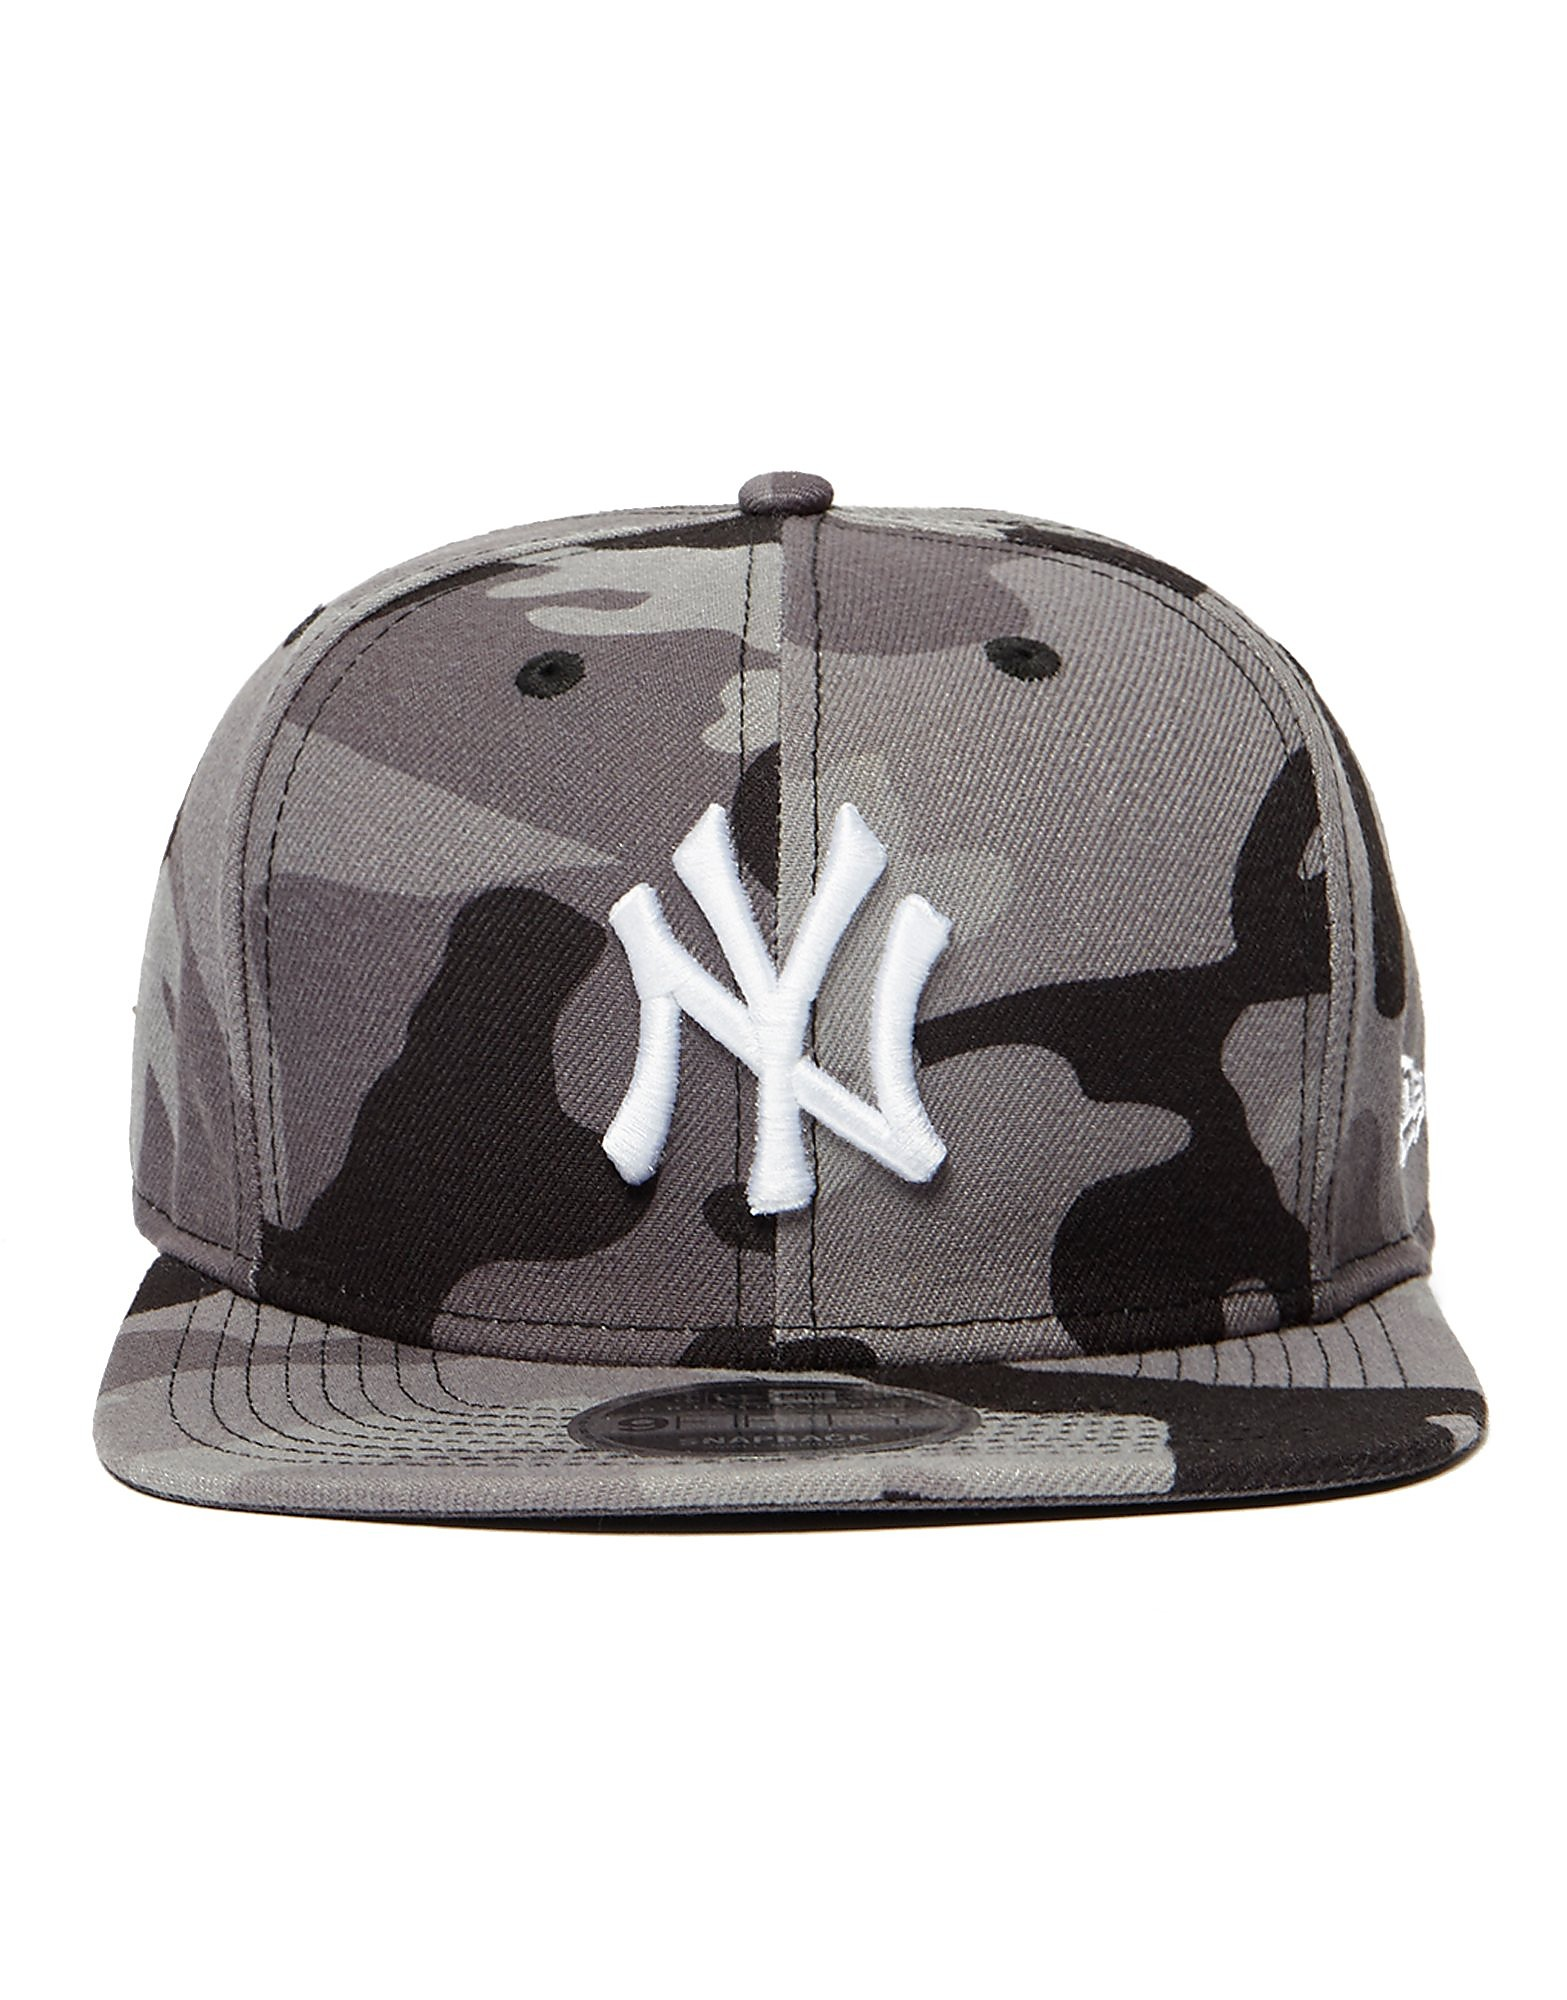 New Era MLB New York Yankees 9FIFTY Snapback Cap